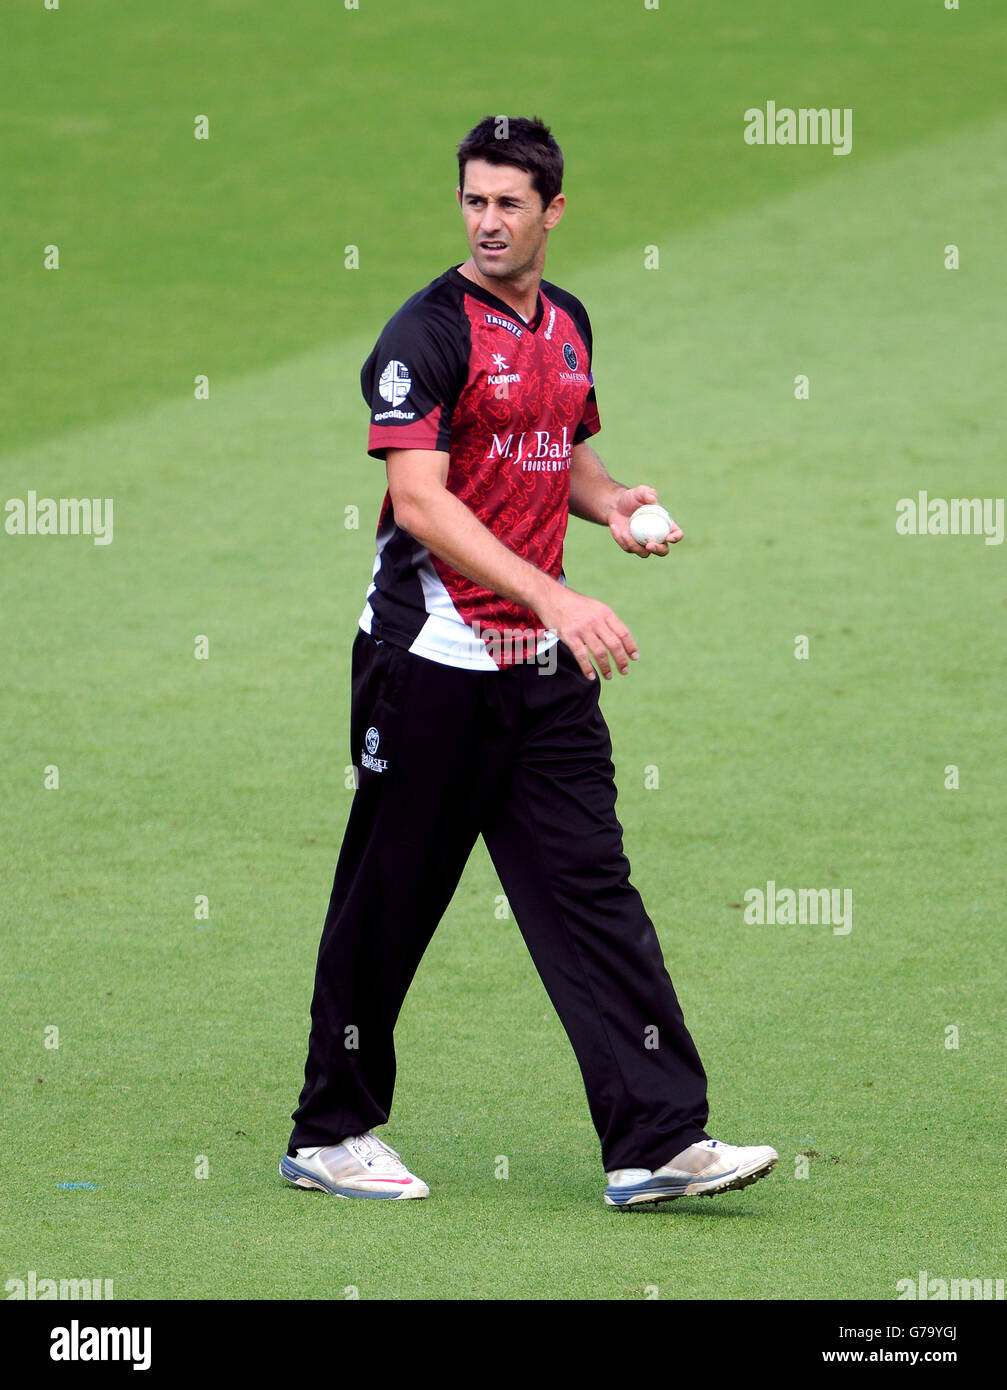 Cricket - Royal London One Day Cup - Surrey v Somerset - Kia Oval - Stock Image